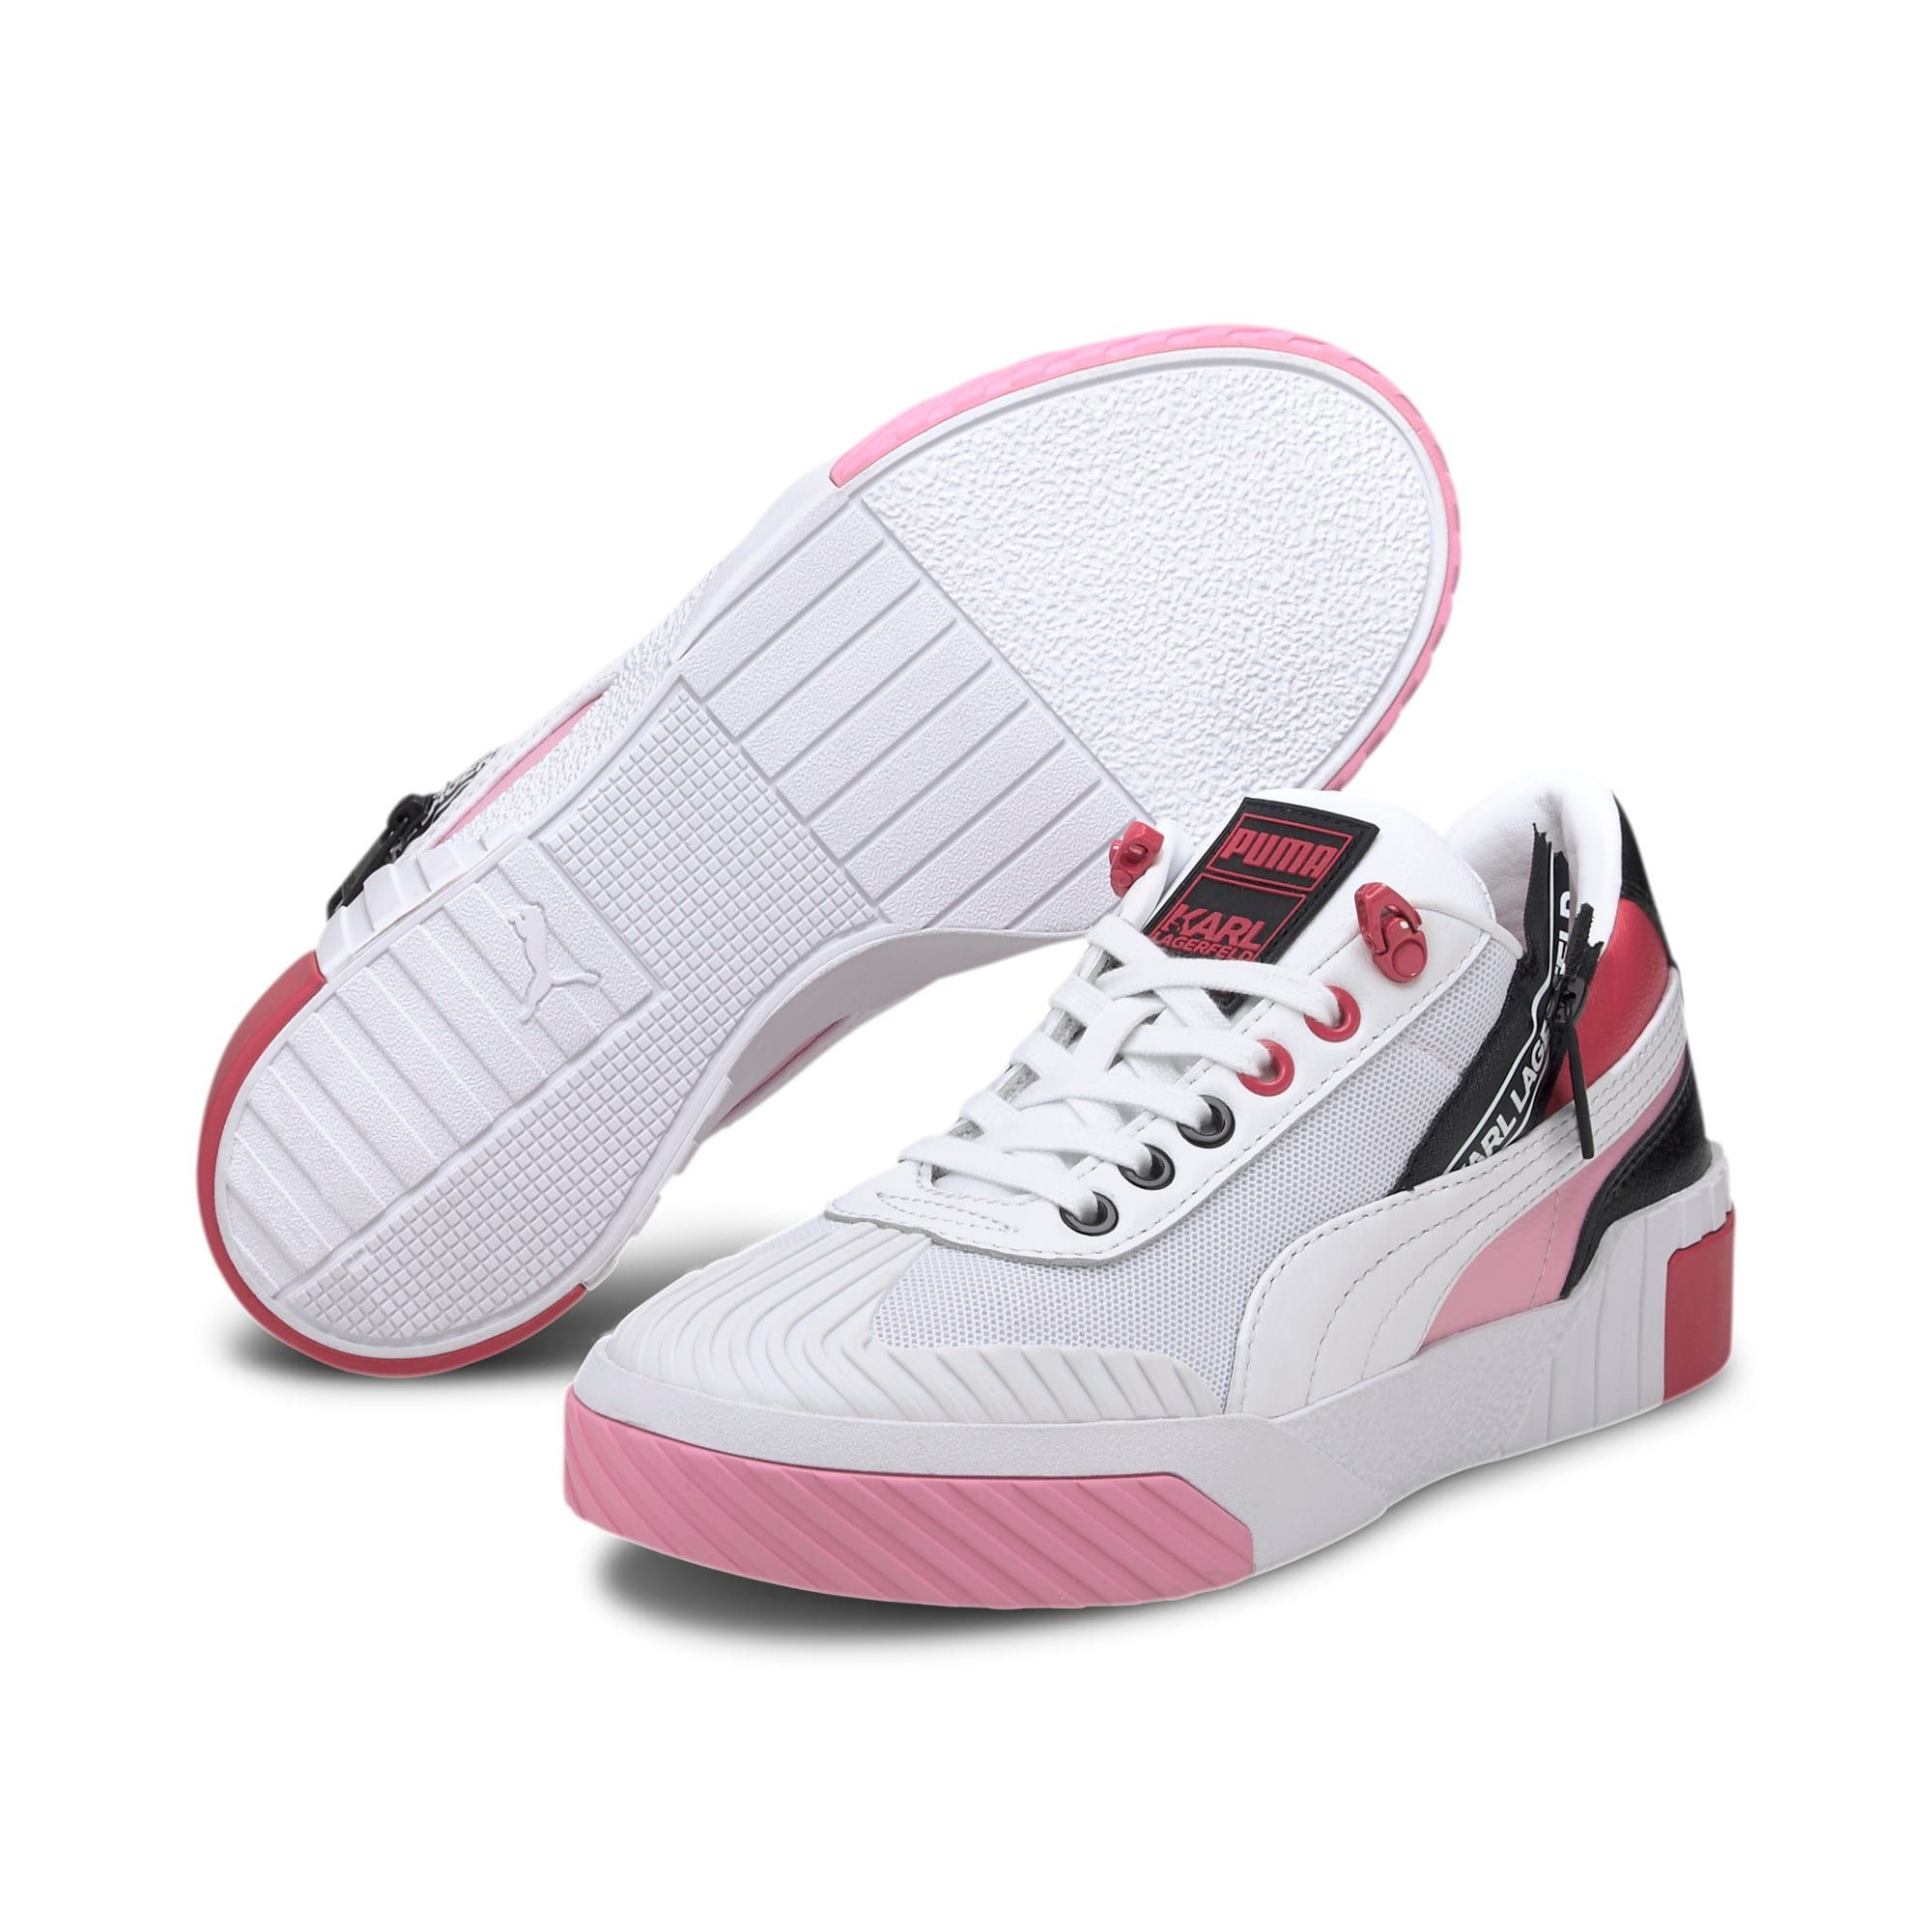 PUMA x Karl Lagerfeld Cali Women's Training Shoes in White ...